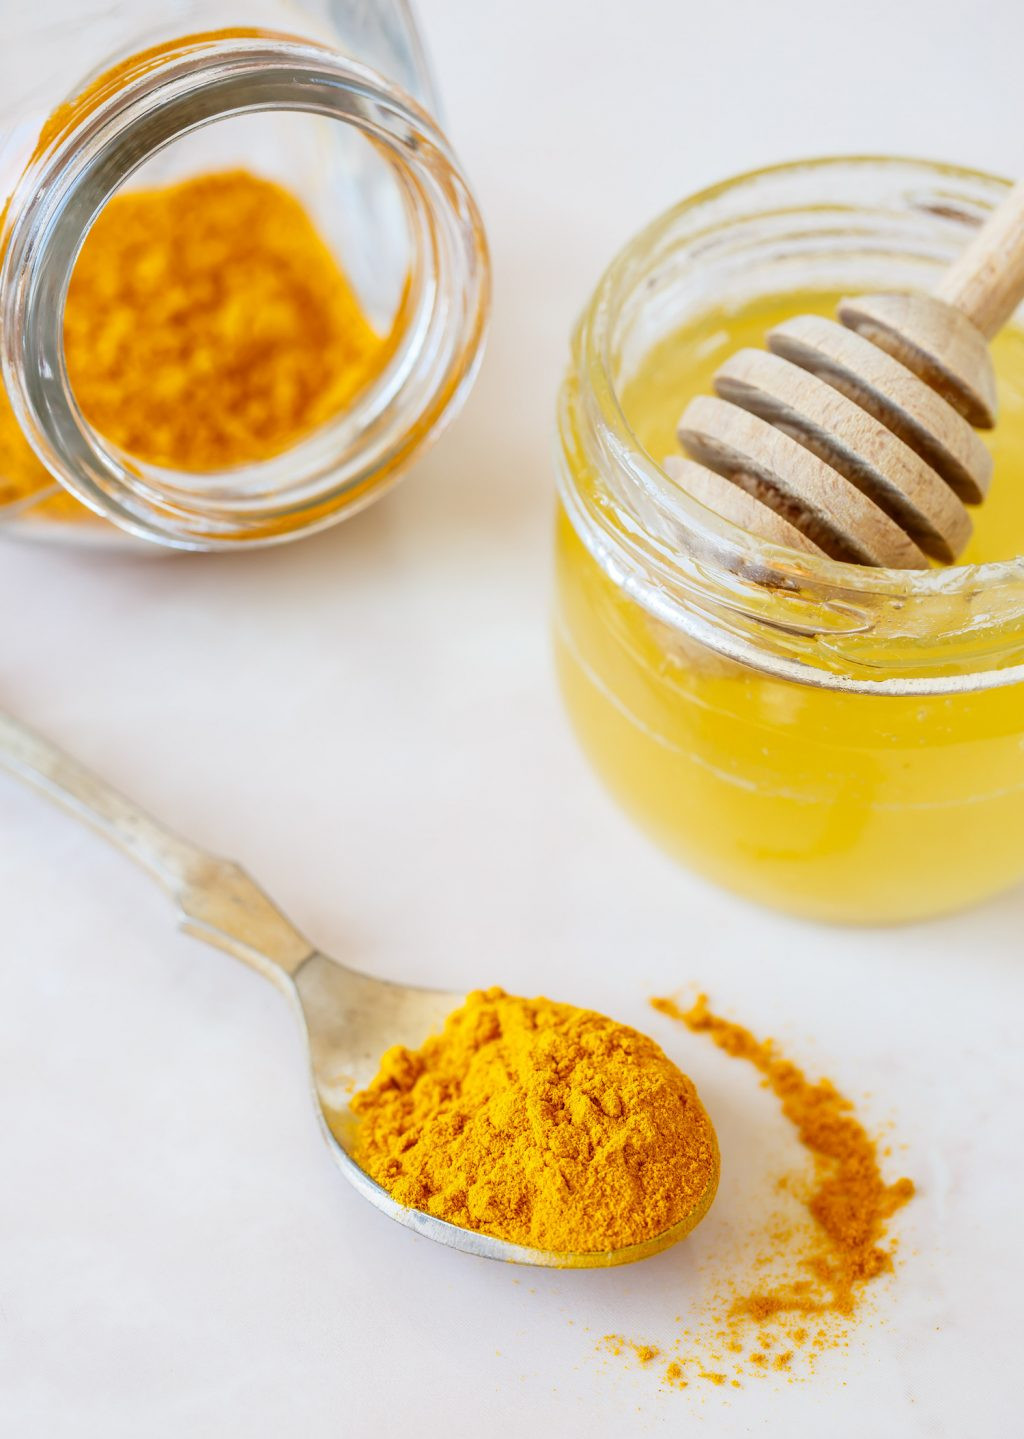 Best ideas about Turmeric Face Mask DIY . Save or Pin 3 DIY Turmeric Face Mask Recipes to Boost Your Skin Now.